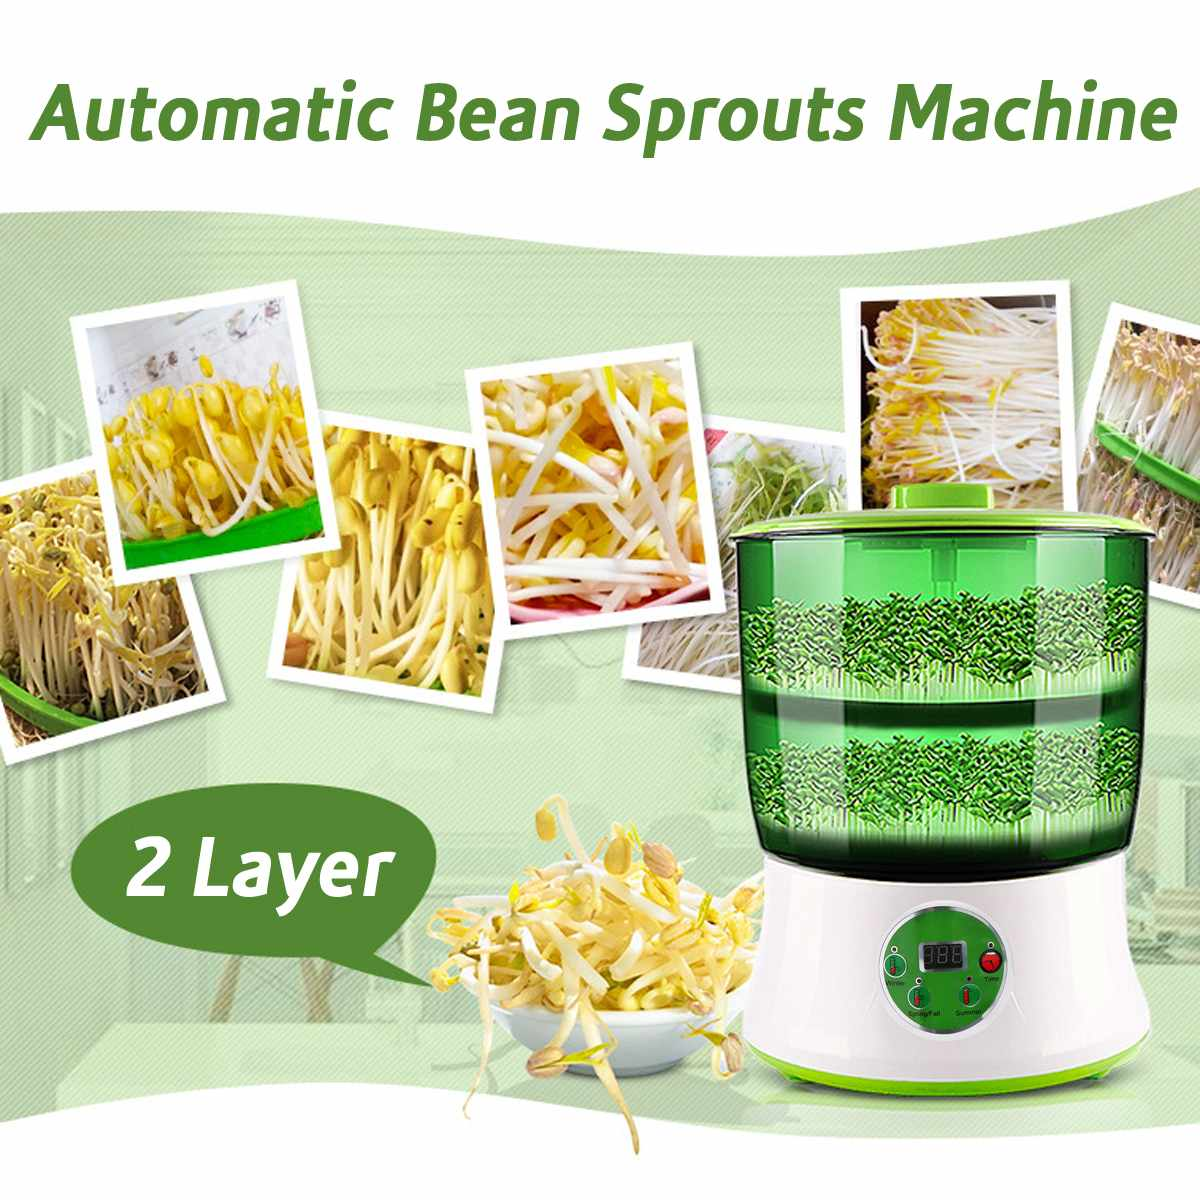 Automatic Bean Sprout Machine Two Layers US Plug Multifunctional Homemade Sprout Bud Machine Intelligent Microcomputer Control